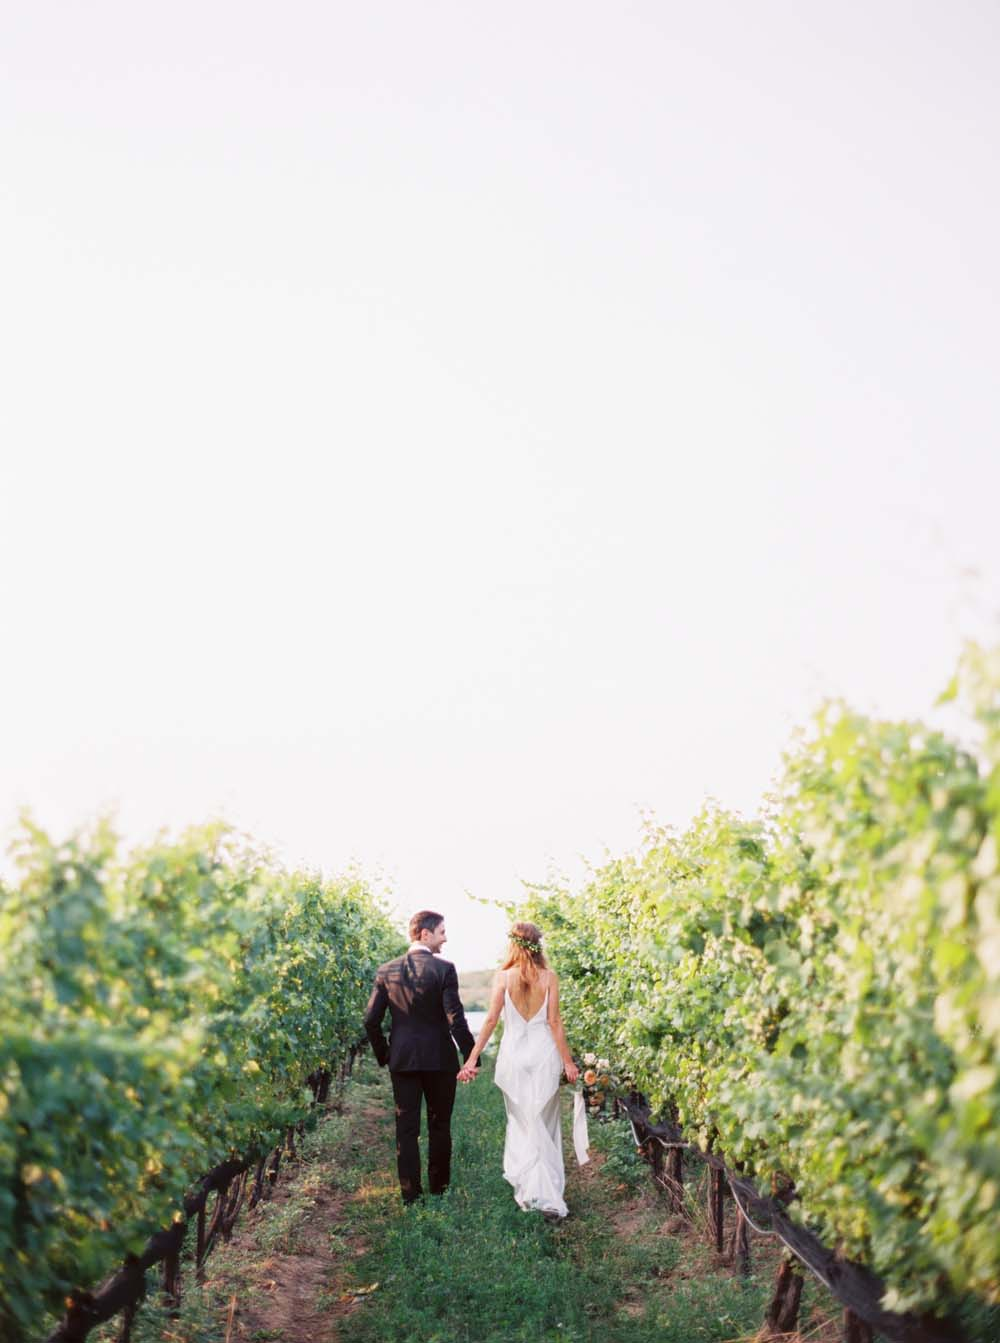 A Floral Peach Celebration in St. David's, Ontario - Vineyard